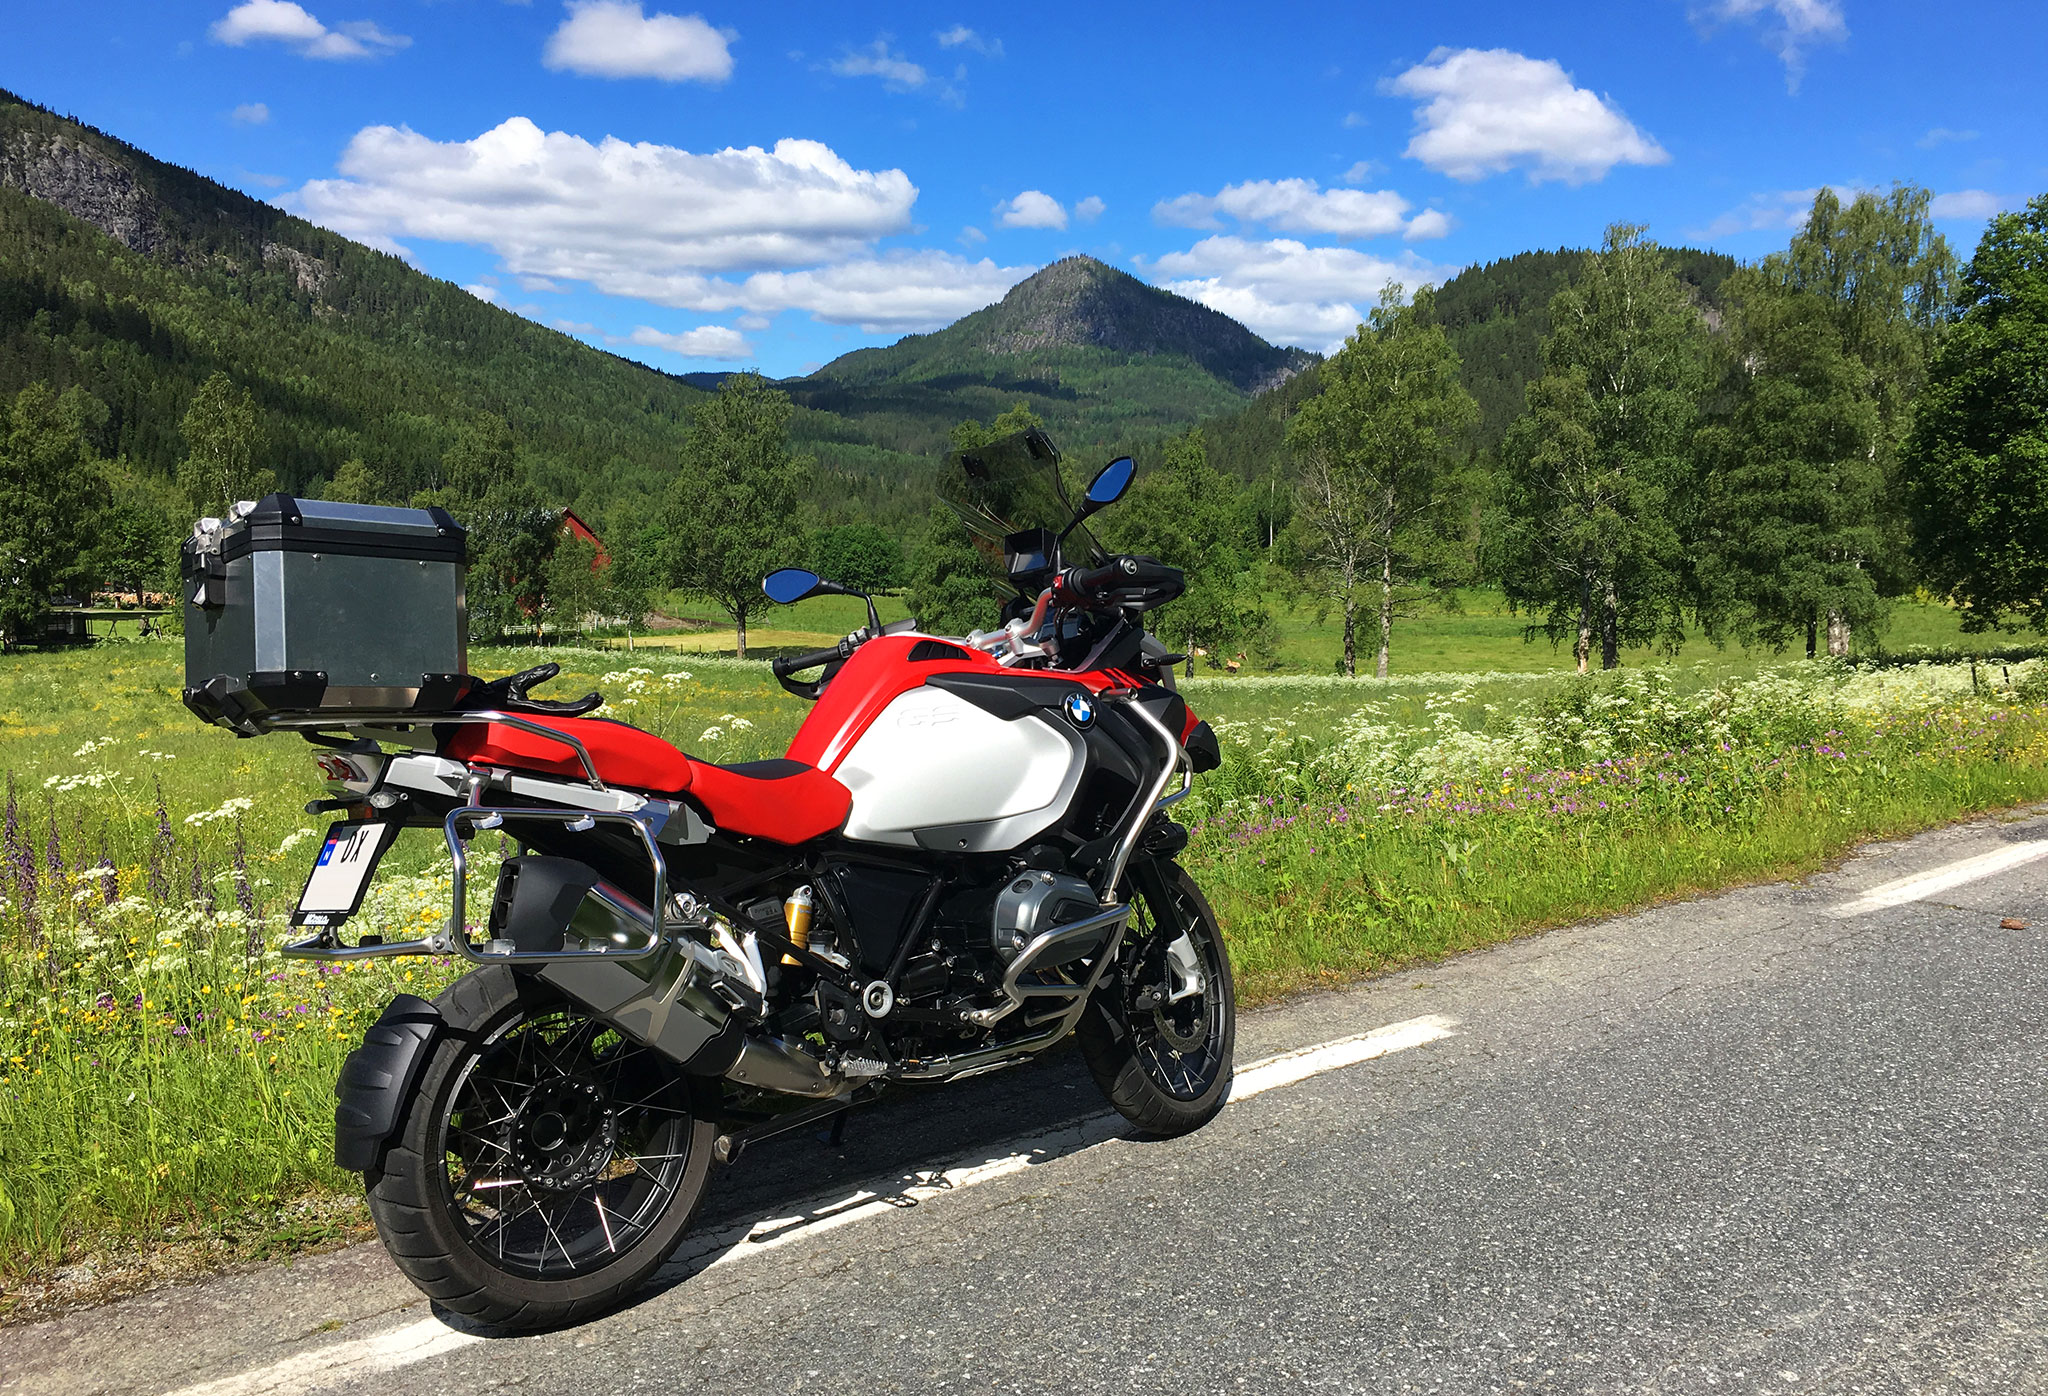 BMW R1200GS Adventures pic